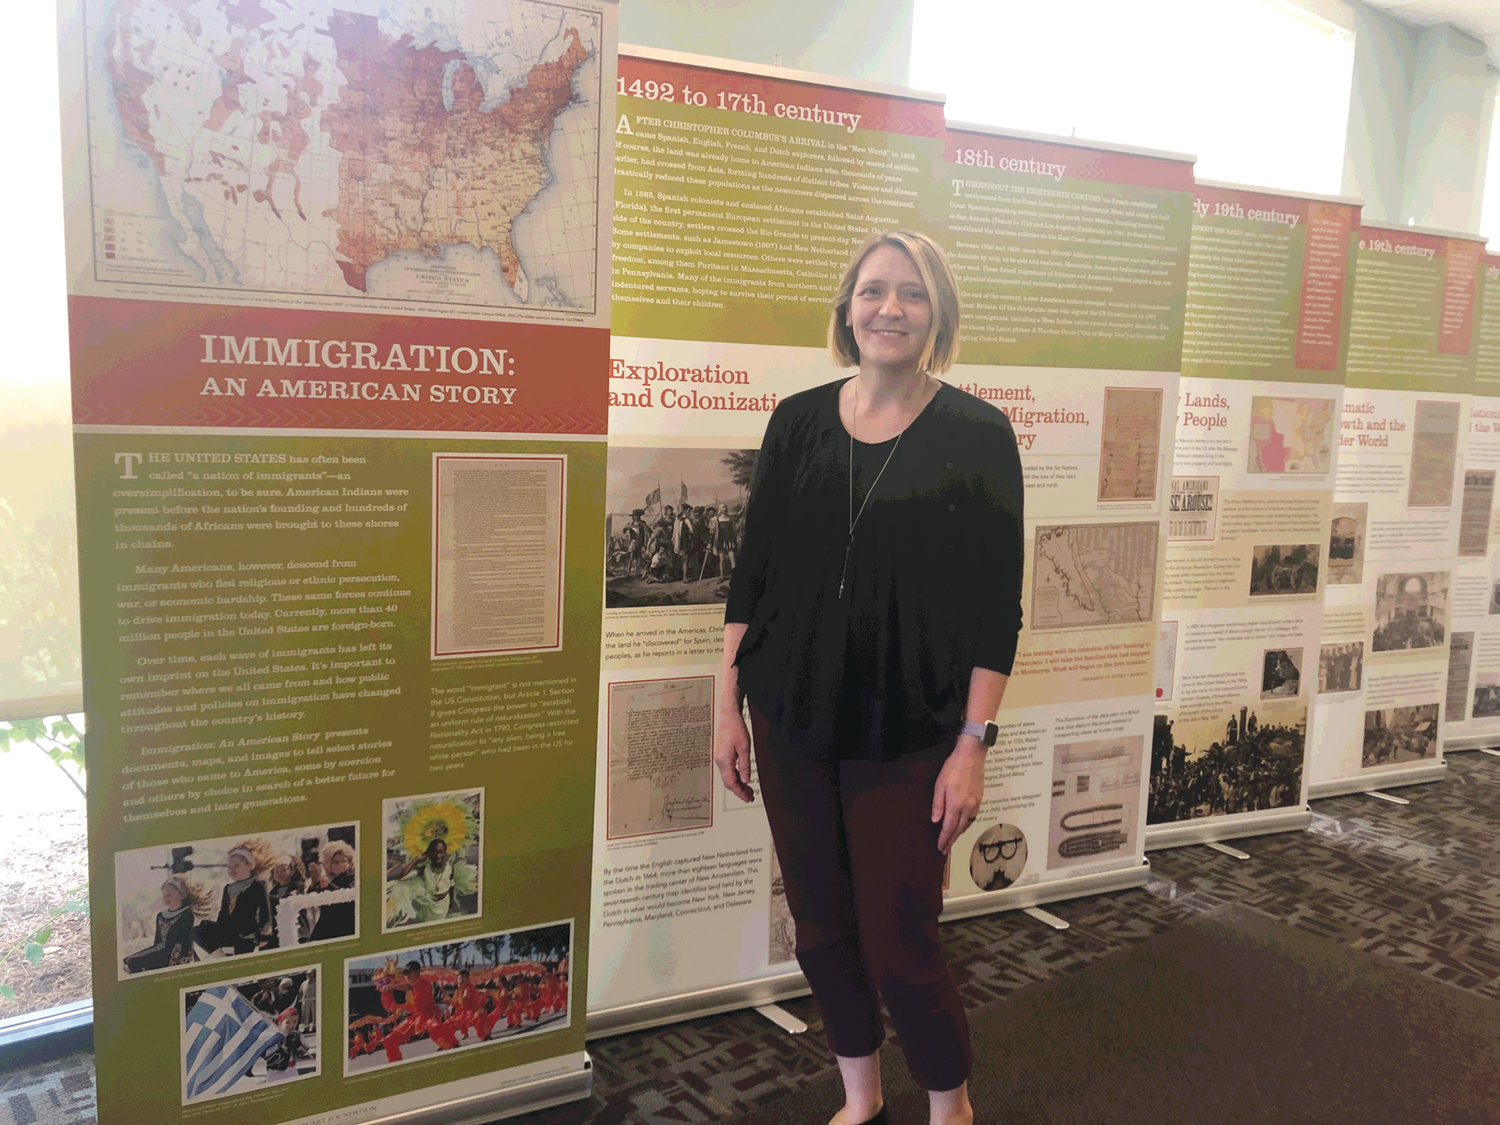 HISTORY MATTERS: Jana Stevenson, Deputy Director of the Warwick Public Library, hopes that the library's exhibit will encourage patrons to share their own experiences with immigration and appreciate Rhode Island's diverse history.